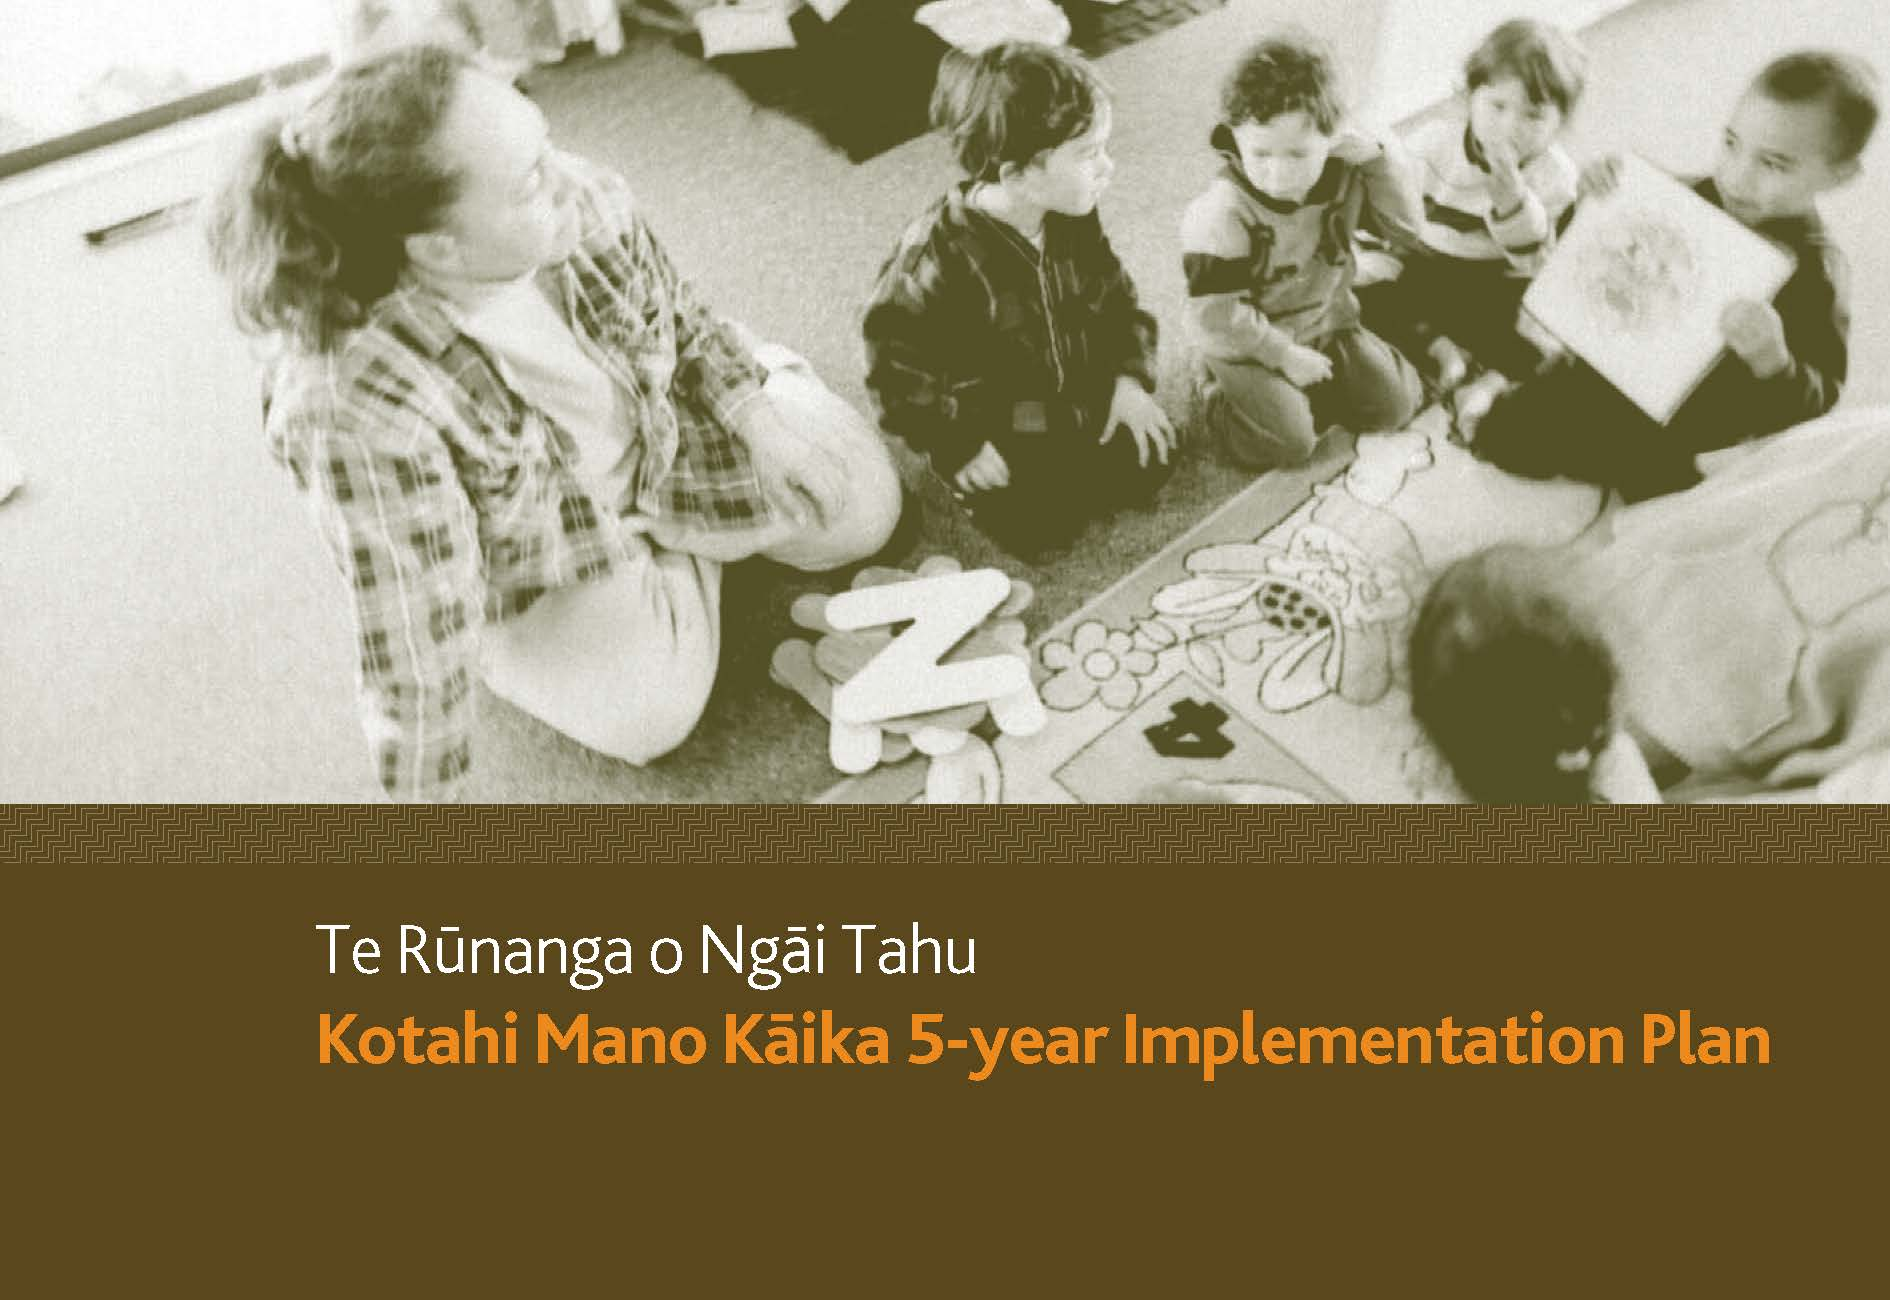 KMK 5 Year Plan 2006